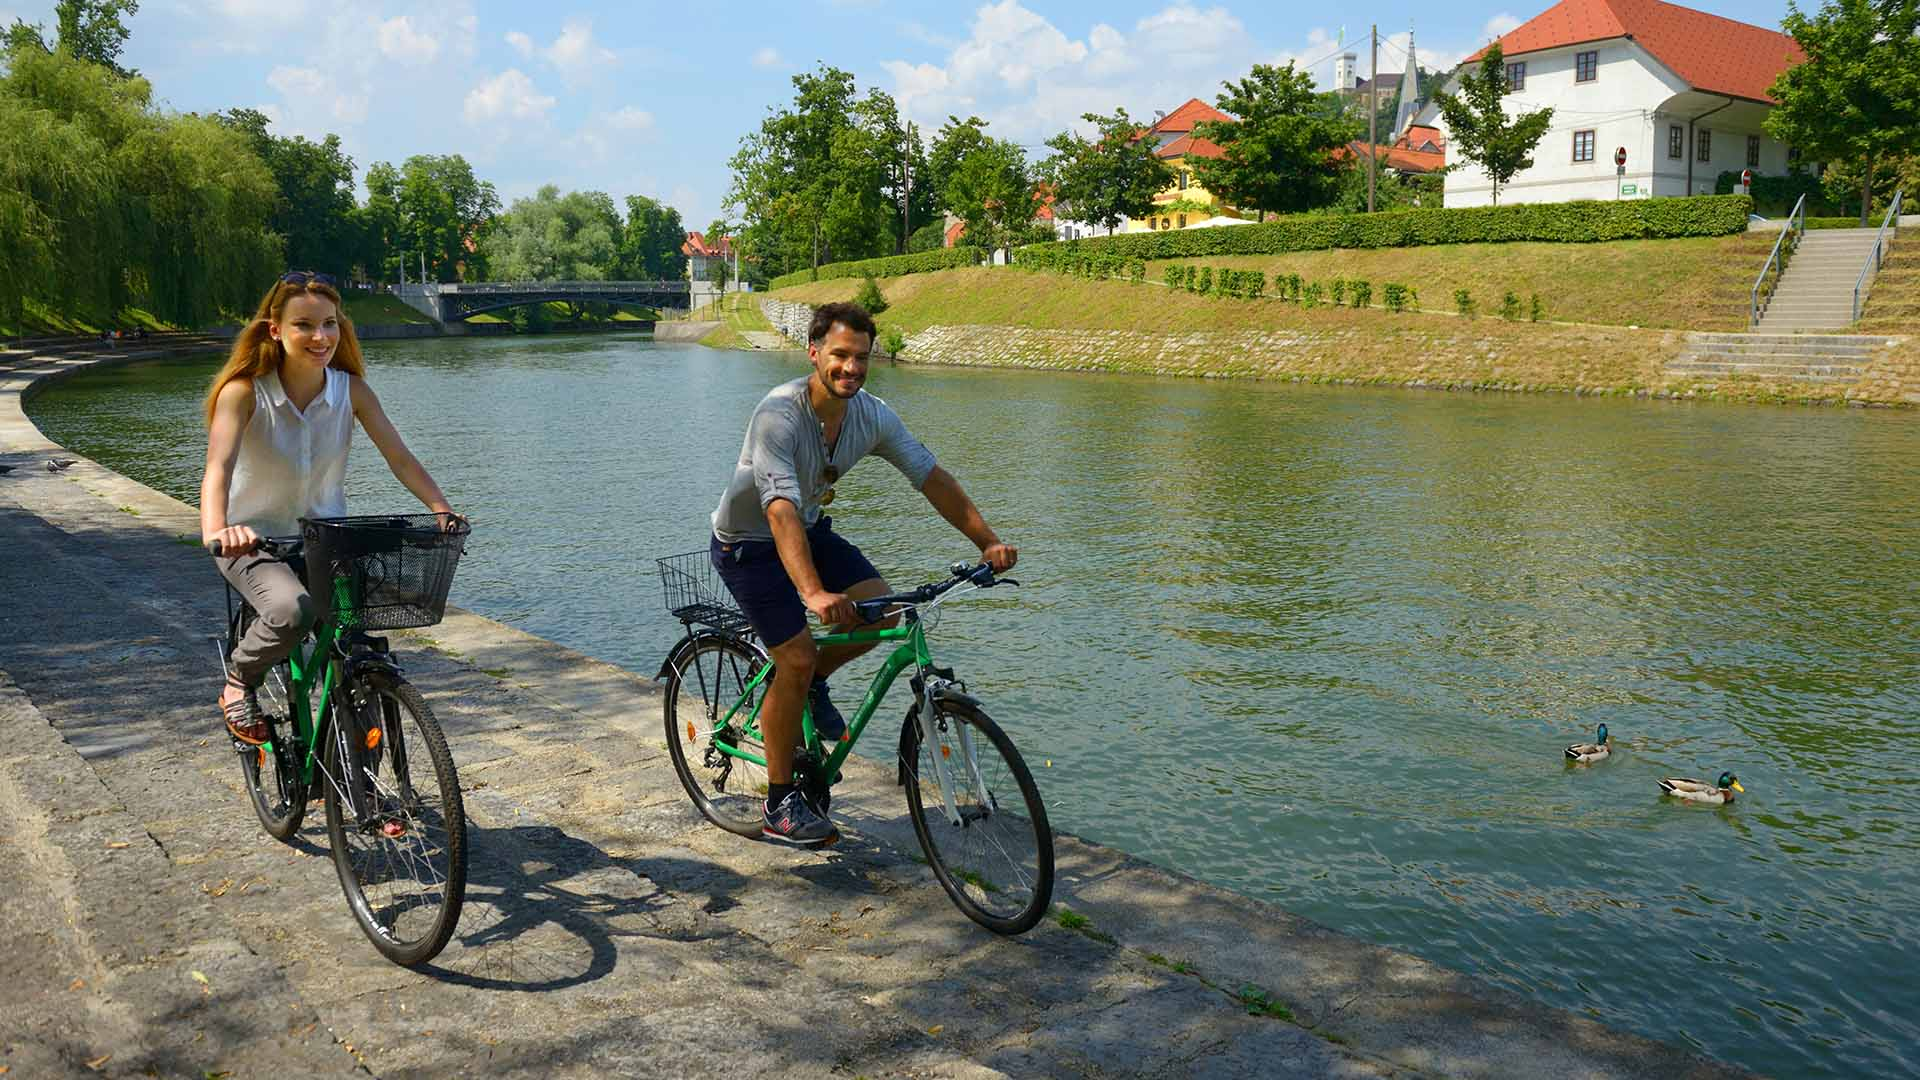 Cycling along the Ljubljanica river